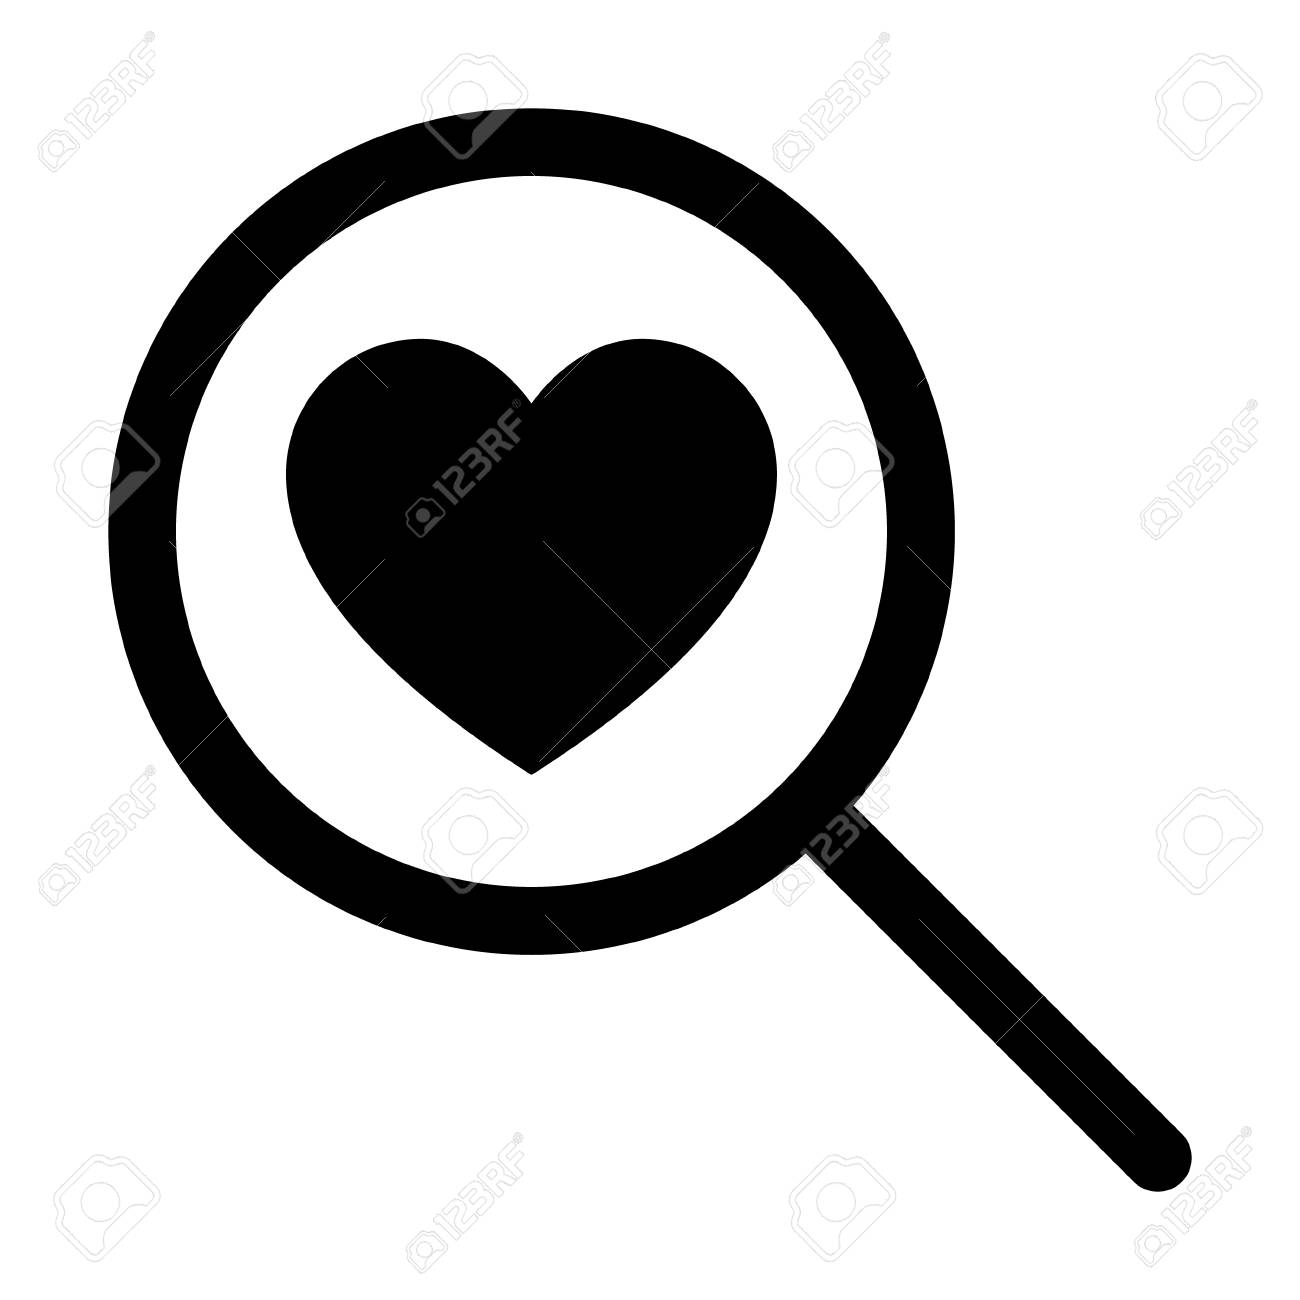 Find love or searching for love line art icon for dating apps and websites stock vector